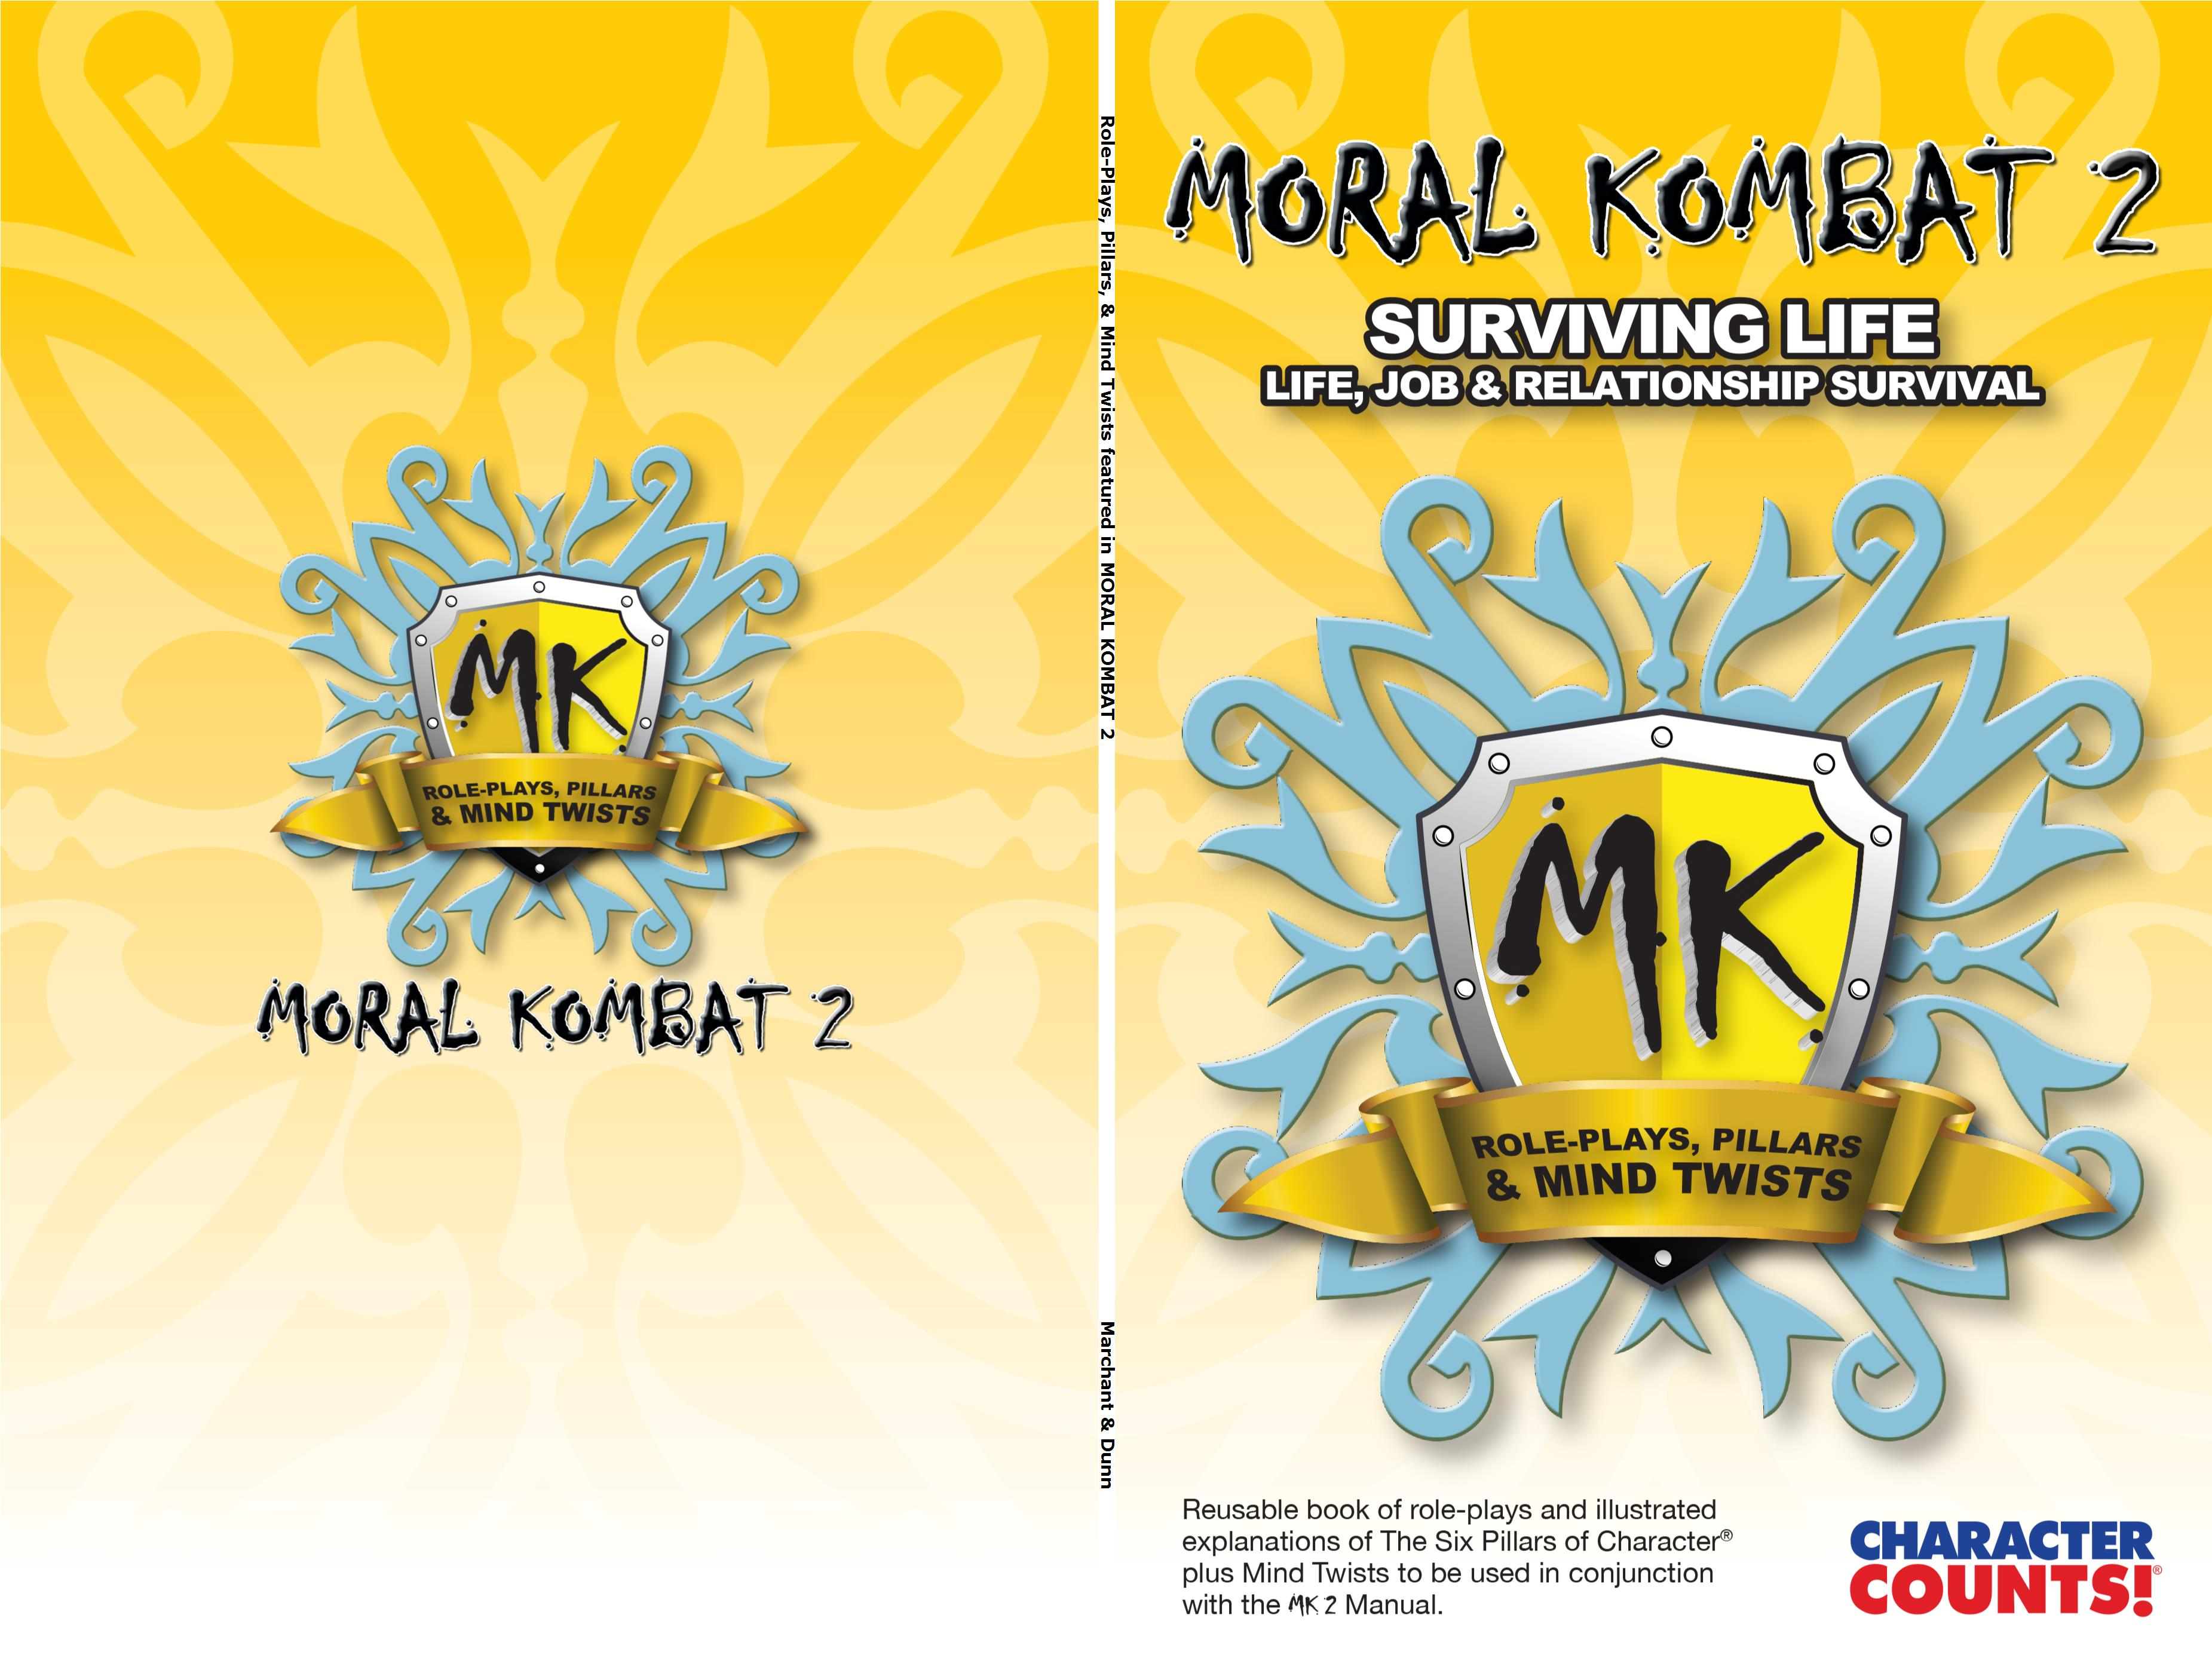 Role-Plays, Pillars, & Mind Twists featured in MORAL KOMBAT 2 Student Manual cover image